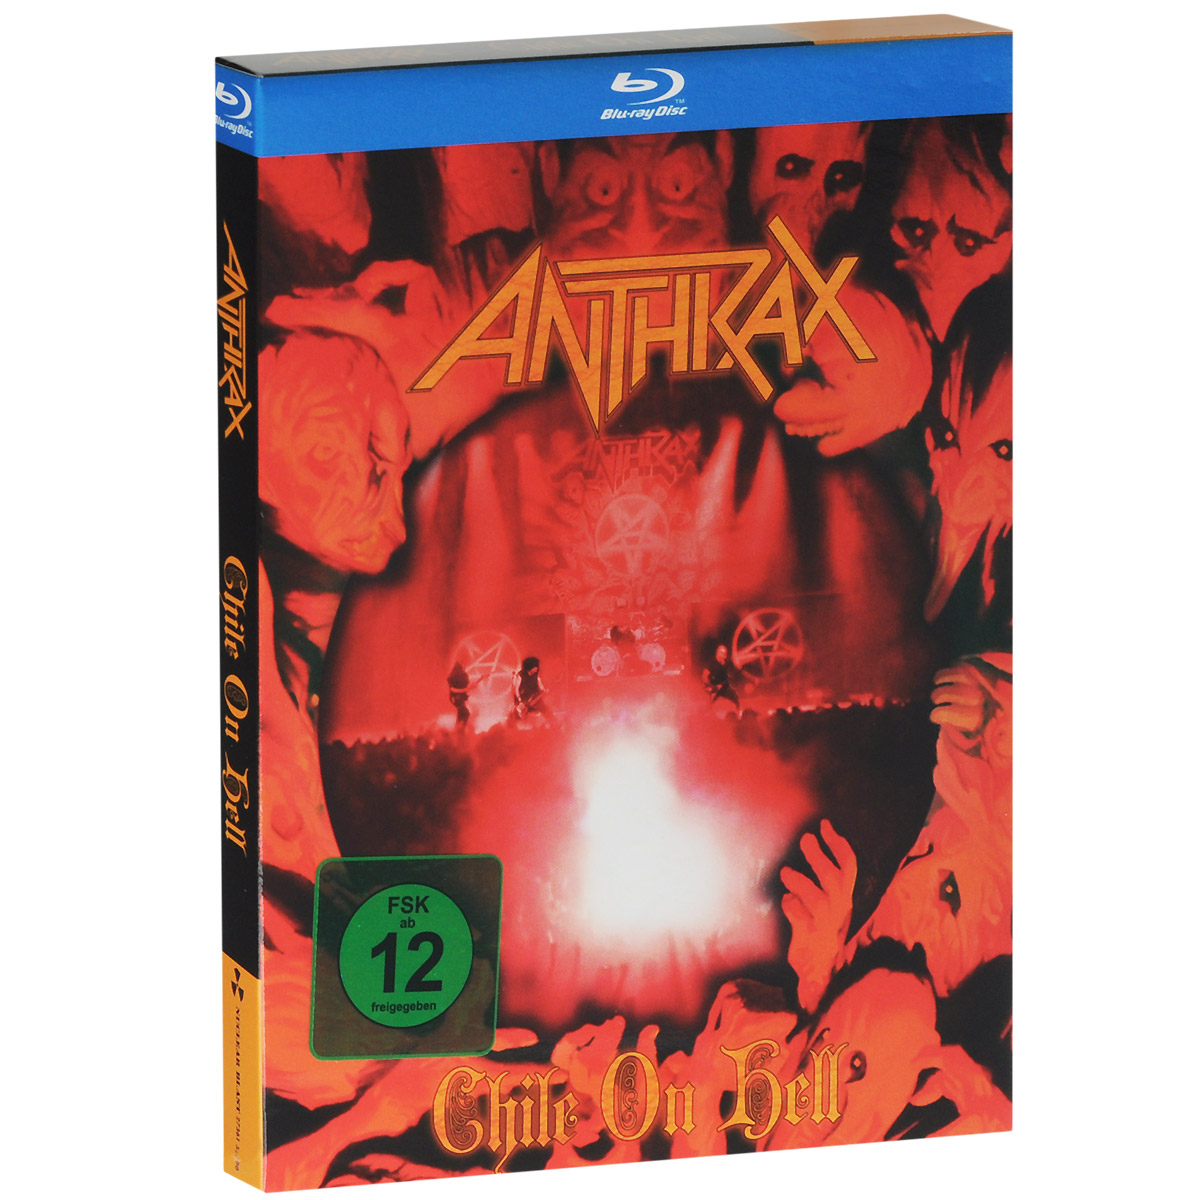 Anthrax. Chile on hell (Blu-ray + 2 CD) ichi f a worker s graphic memoir of the fukushima nuclear power plant